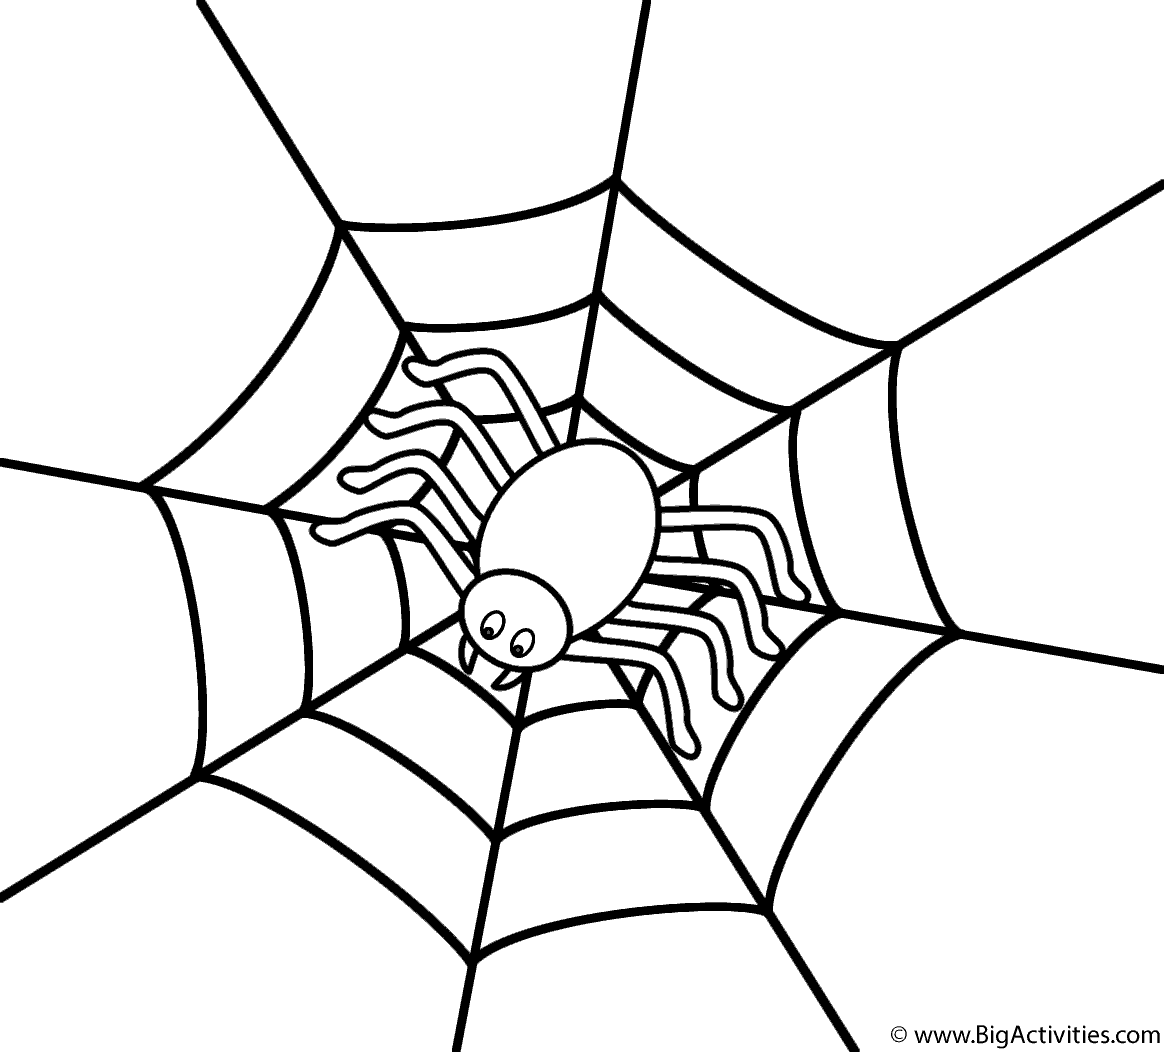 coloring sheet spider coloring pages spider web zentangle coloring page by pamela kennedy tpt spider pages sheet coloring coloring